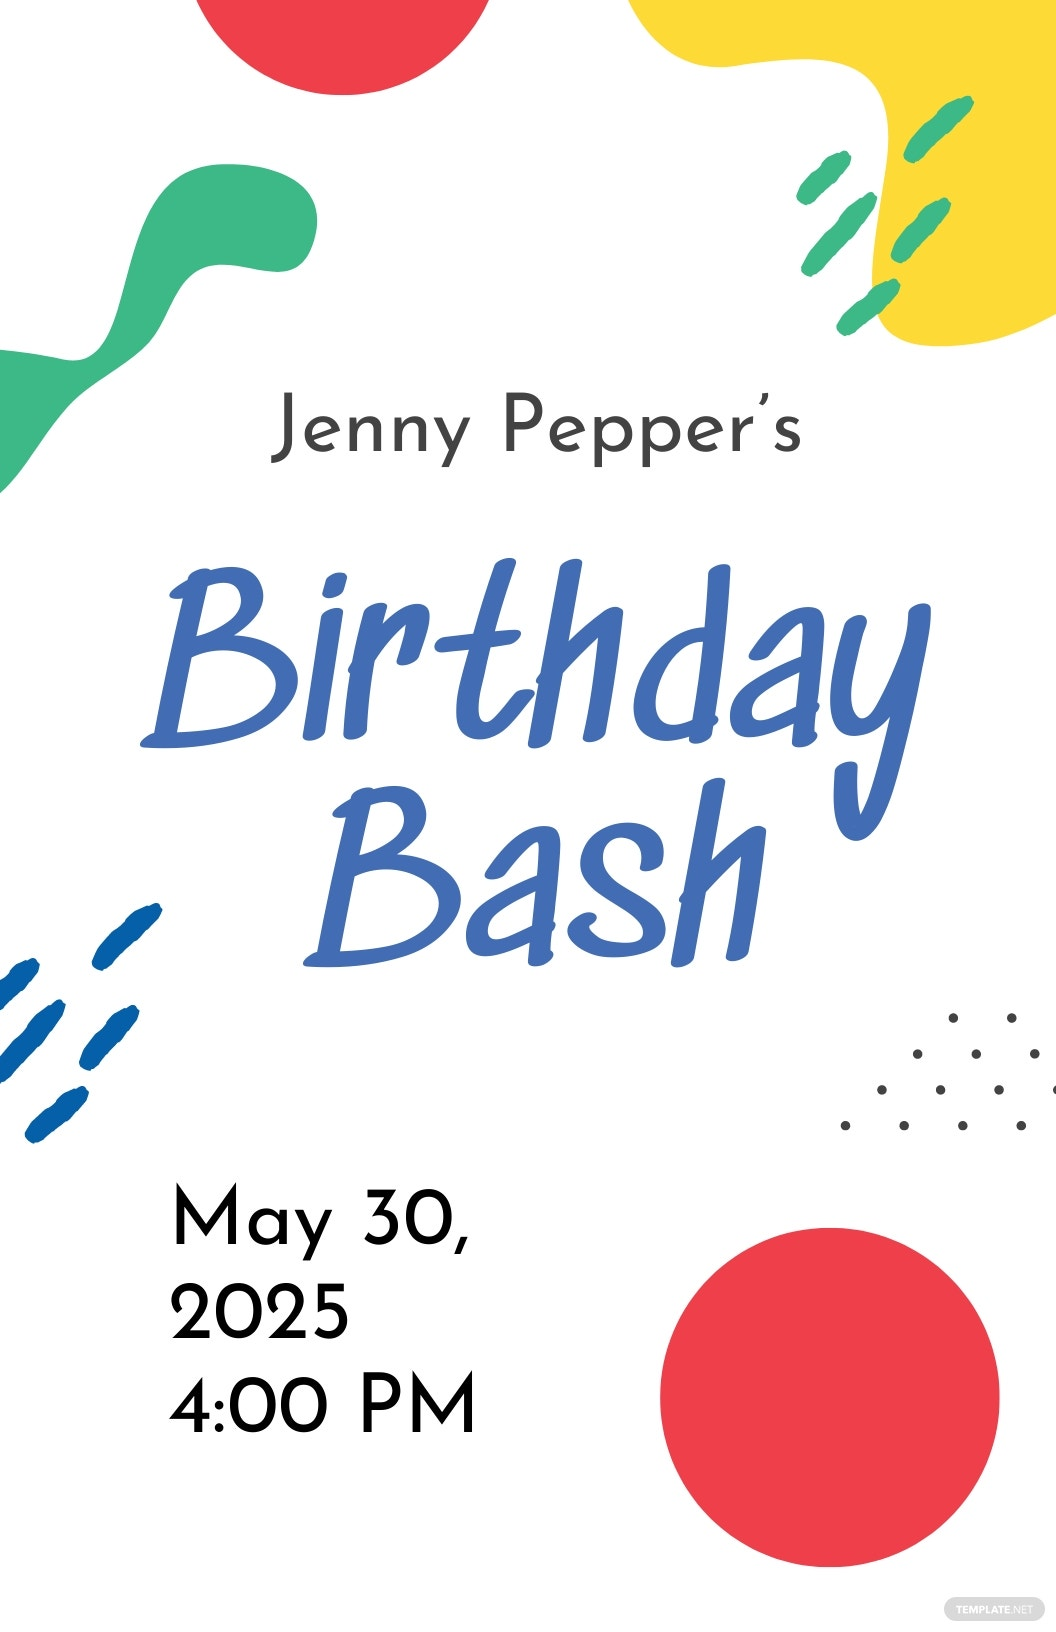 Free Birthday Event Poster Template.jpe